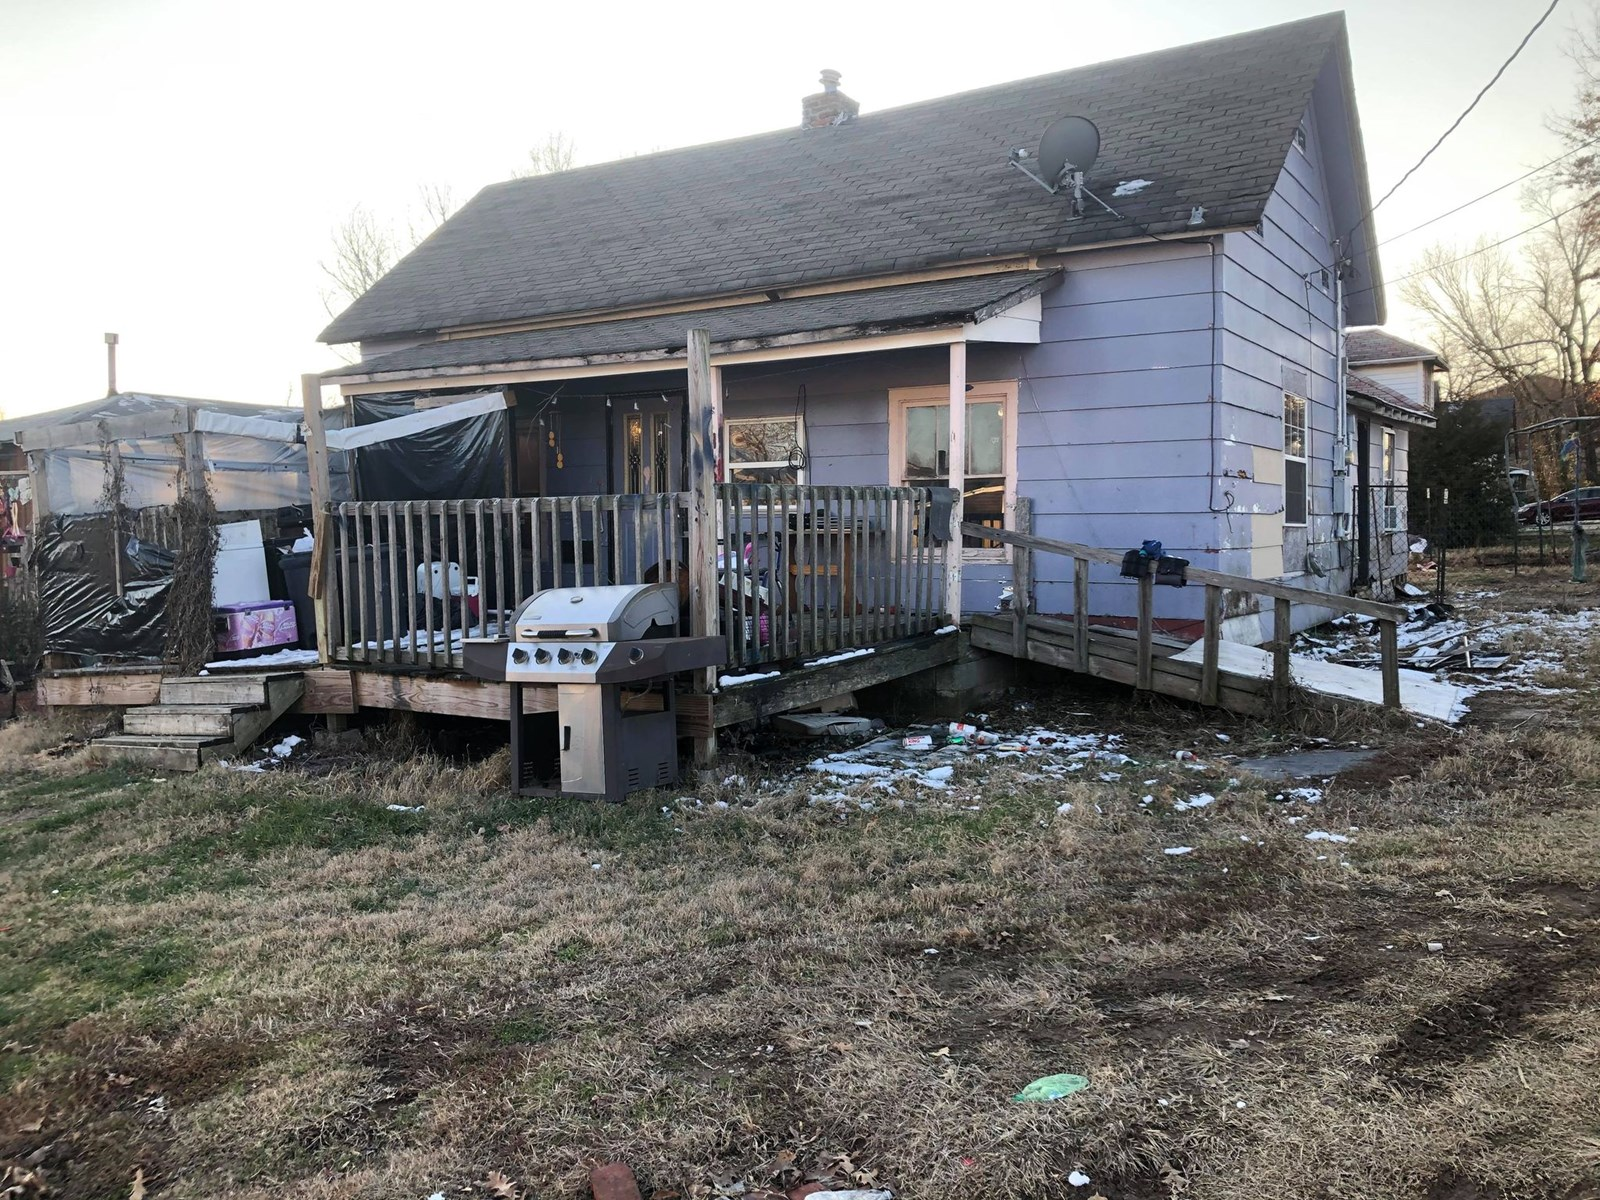 Fixer upper house for sale in Ava Mo!